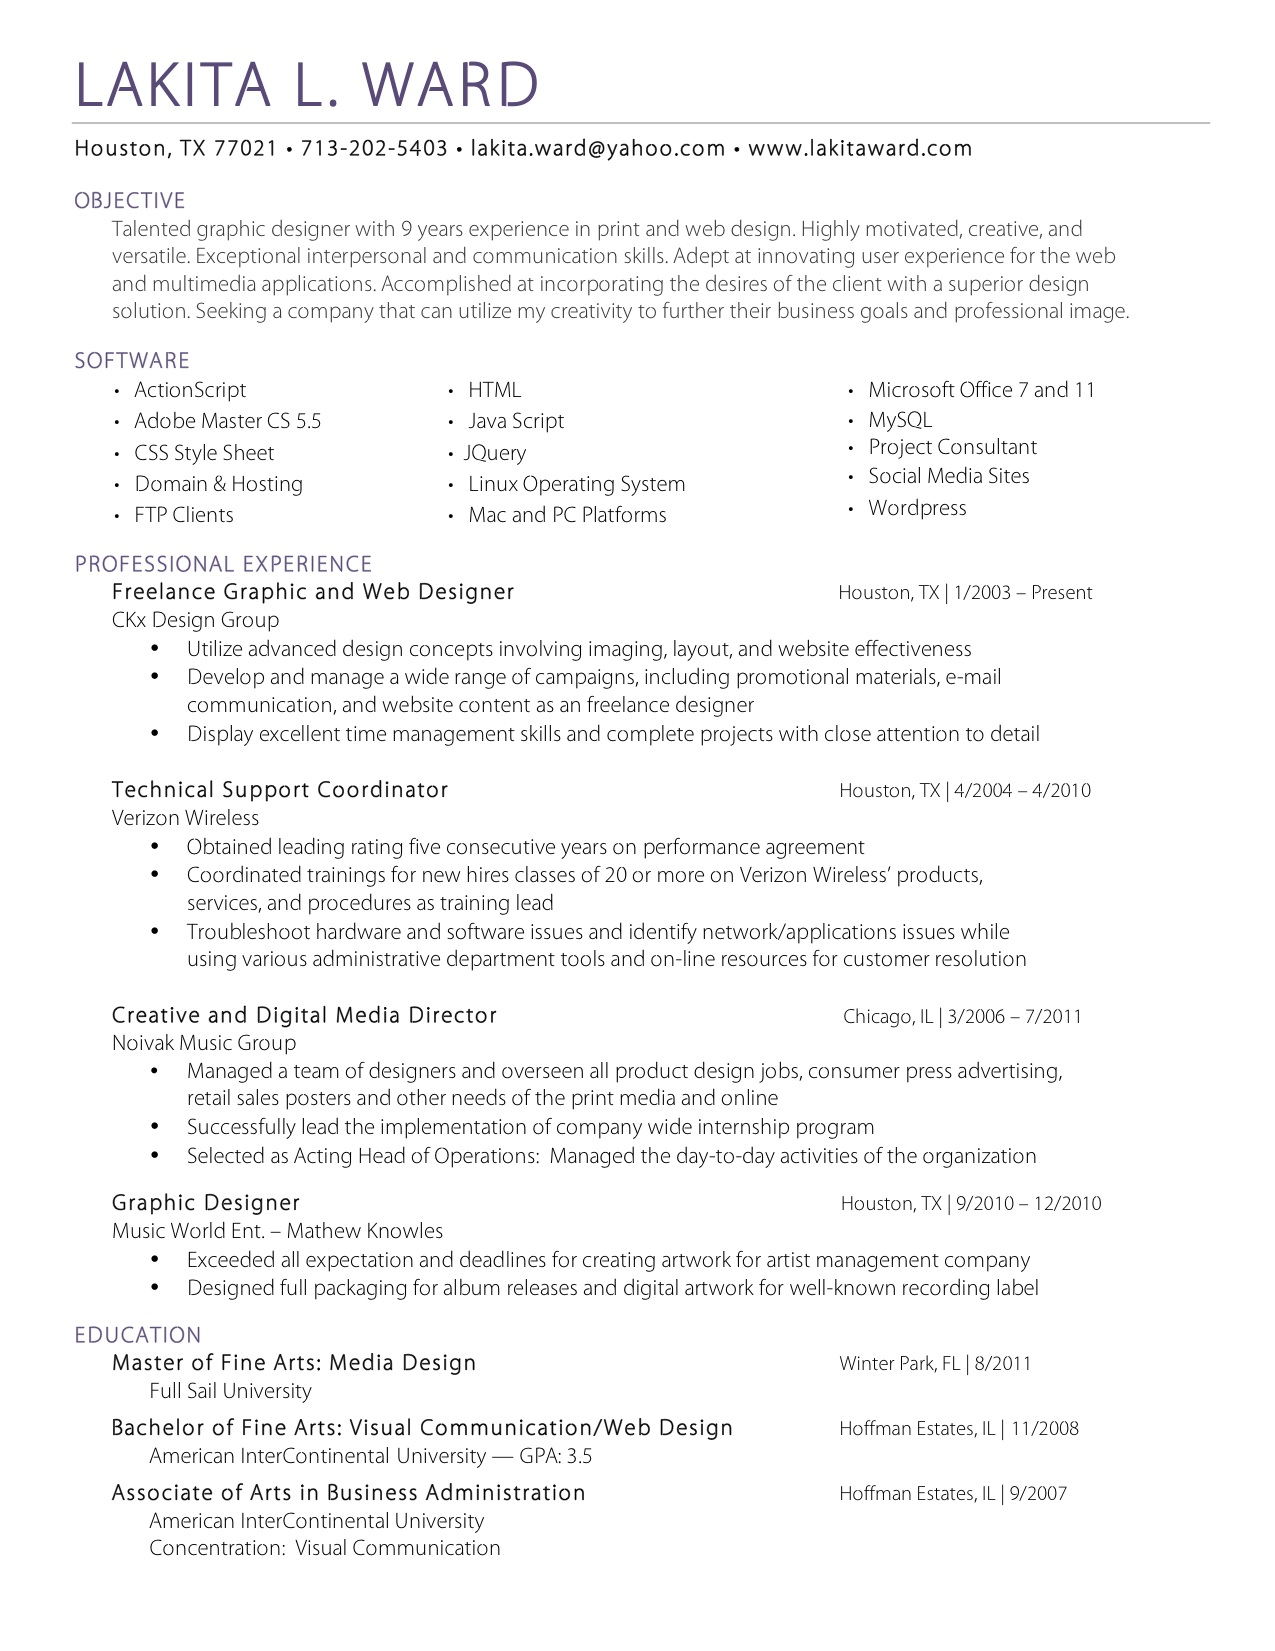 Resume Format For Makeup Artist Resume Samples New Media Communications